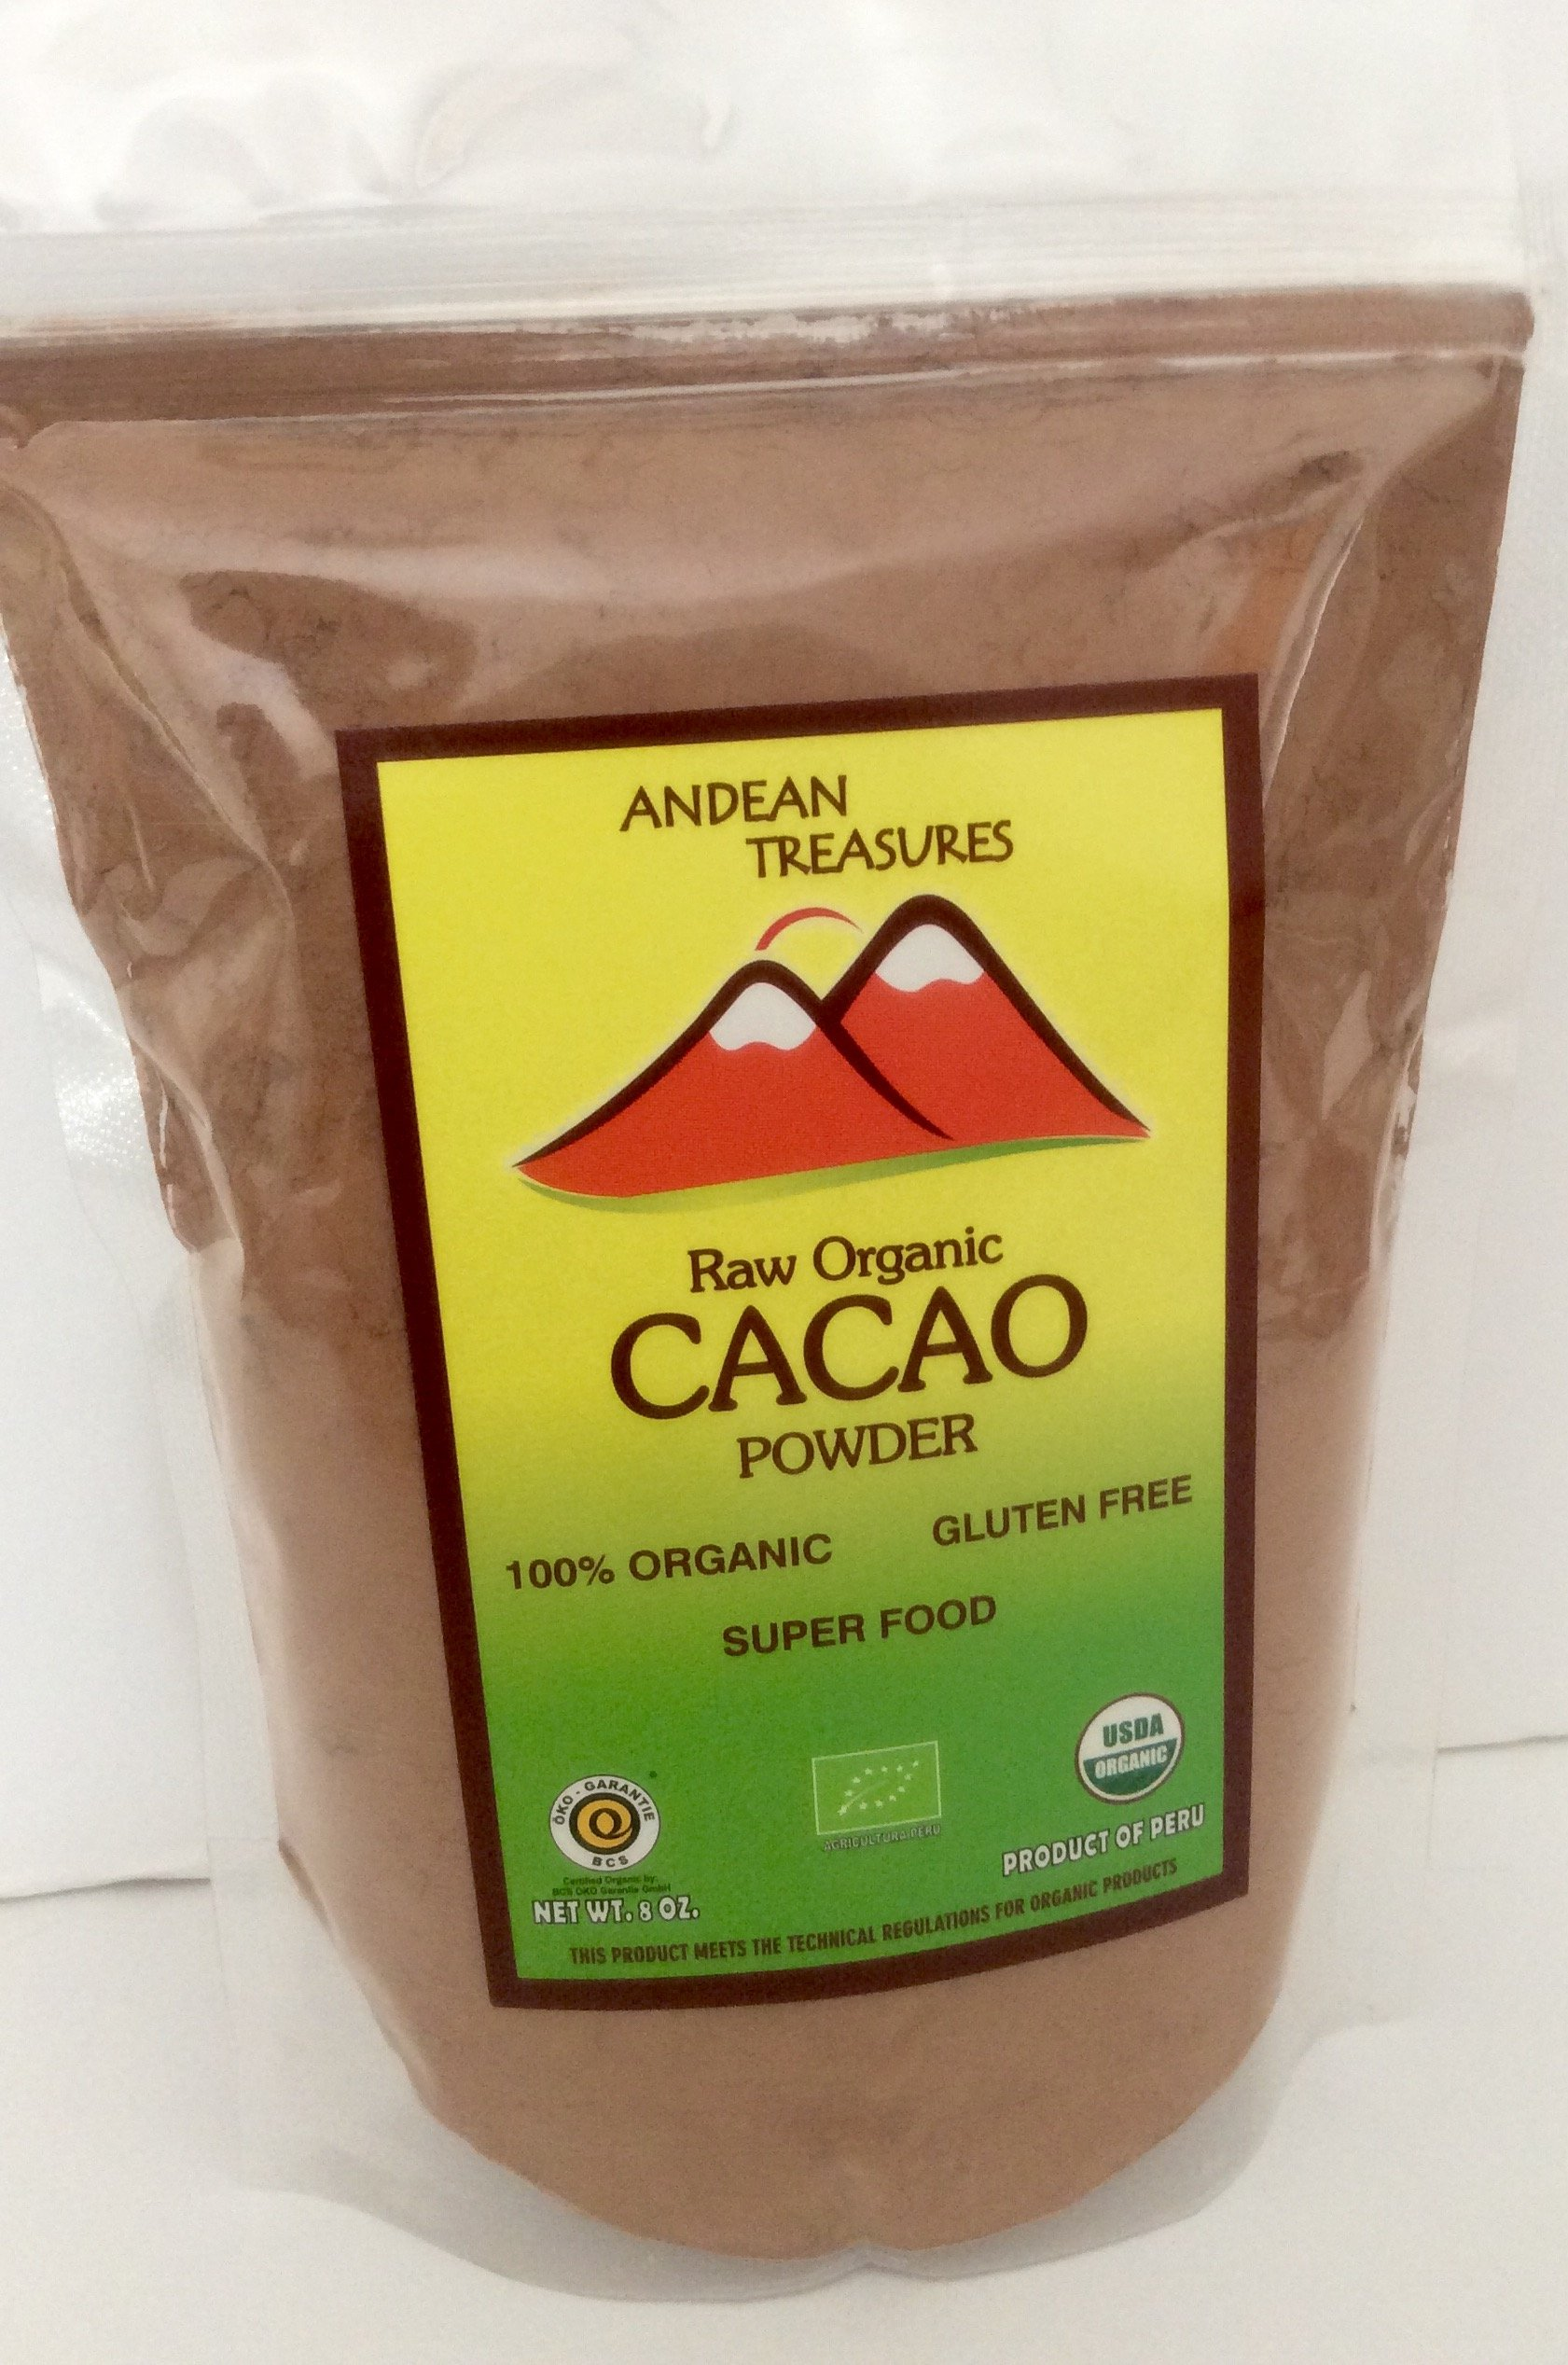 RAW ORGANIC CACAO POWDER 1 LB (16 OZ) KOSHER CERTIFIED